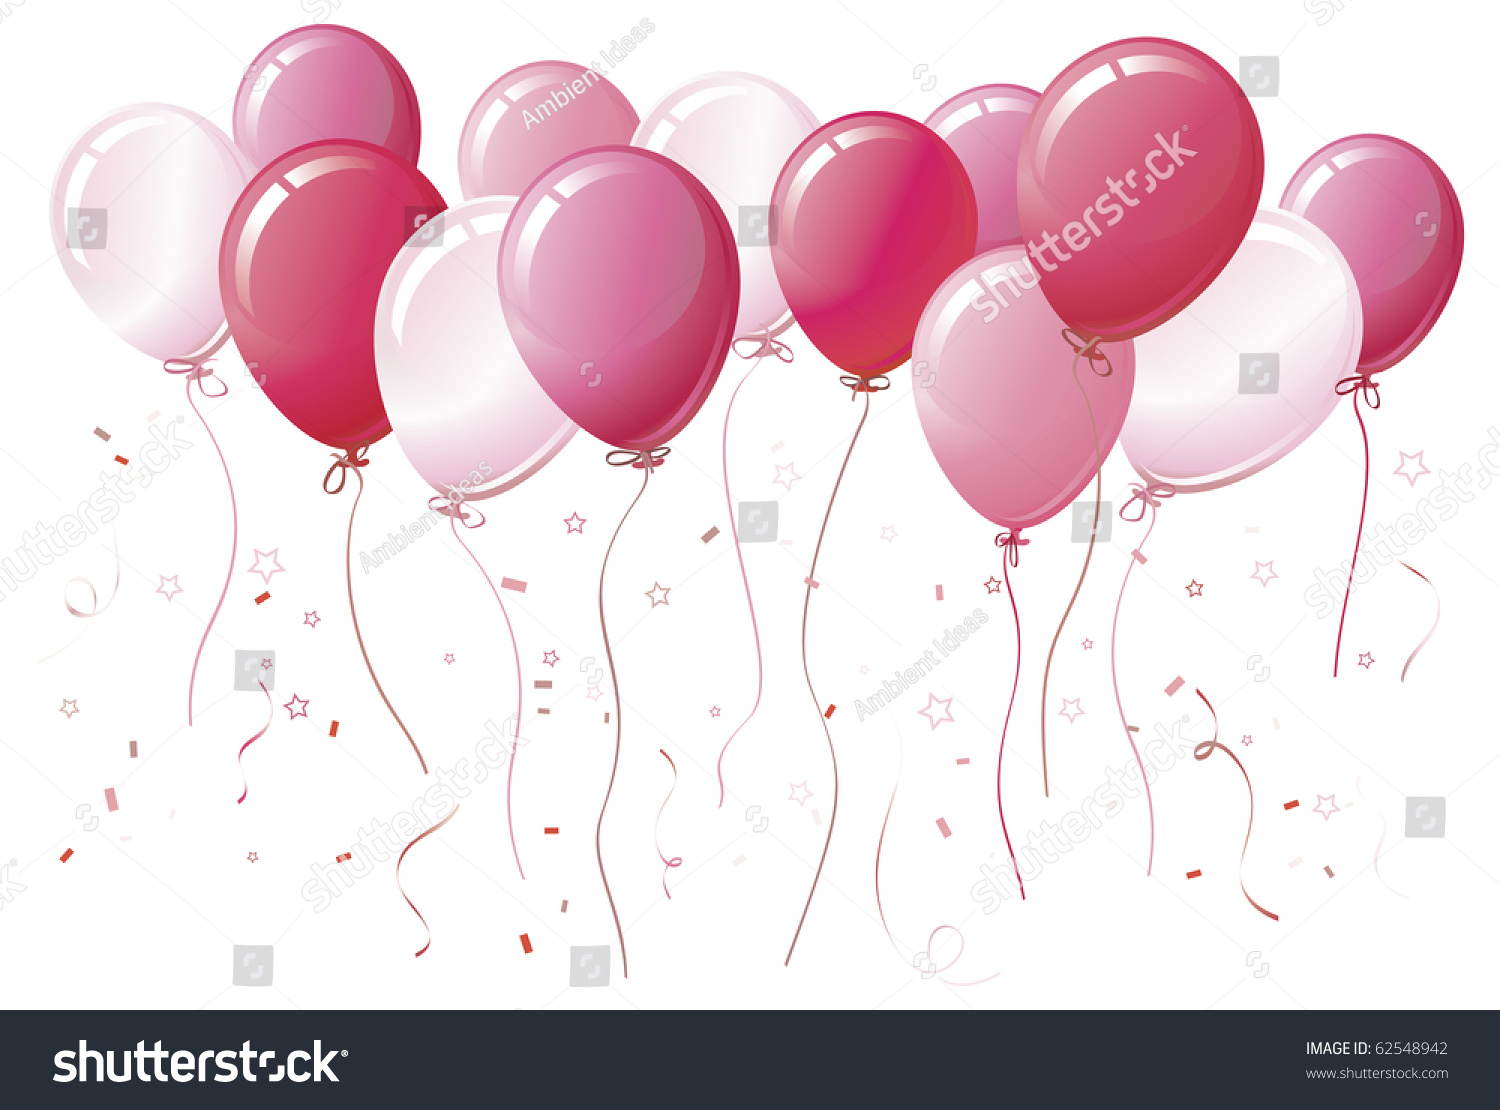 pink balloons floating together colorcoordinated ribbons stock